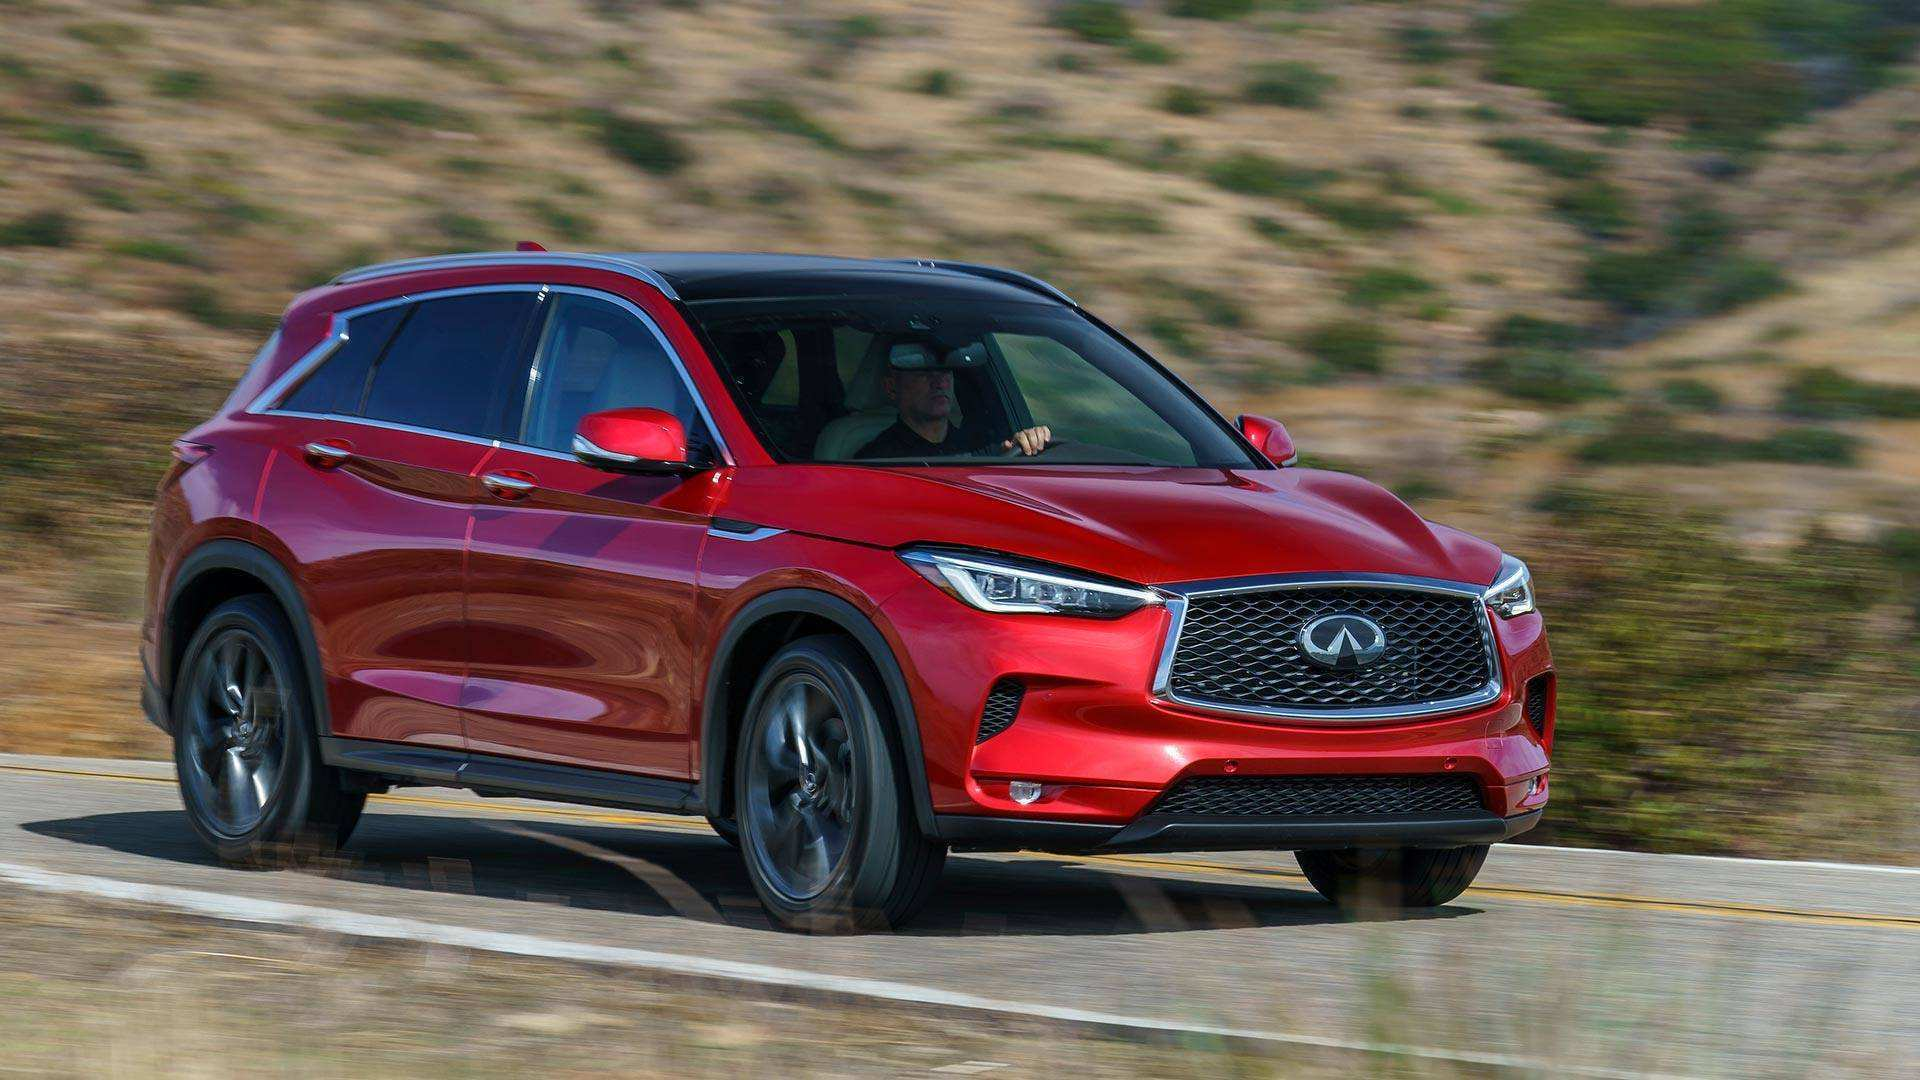 88 The 2019 Infiniti Qx50 First Drive Wallpaper